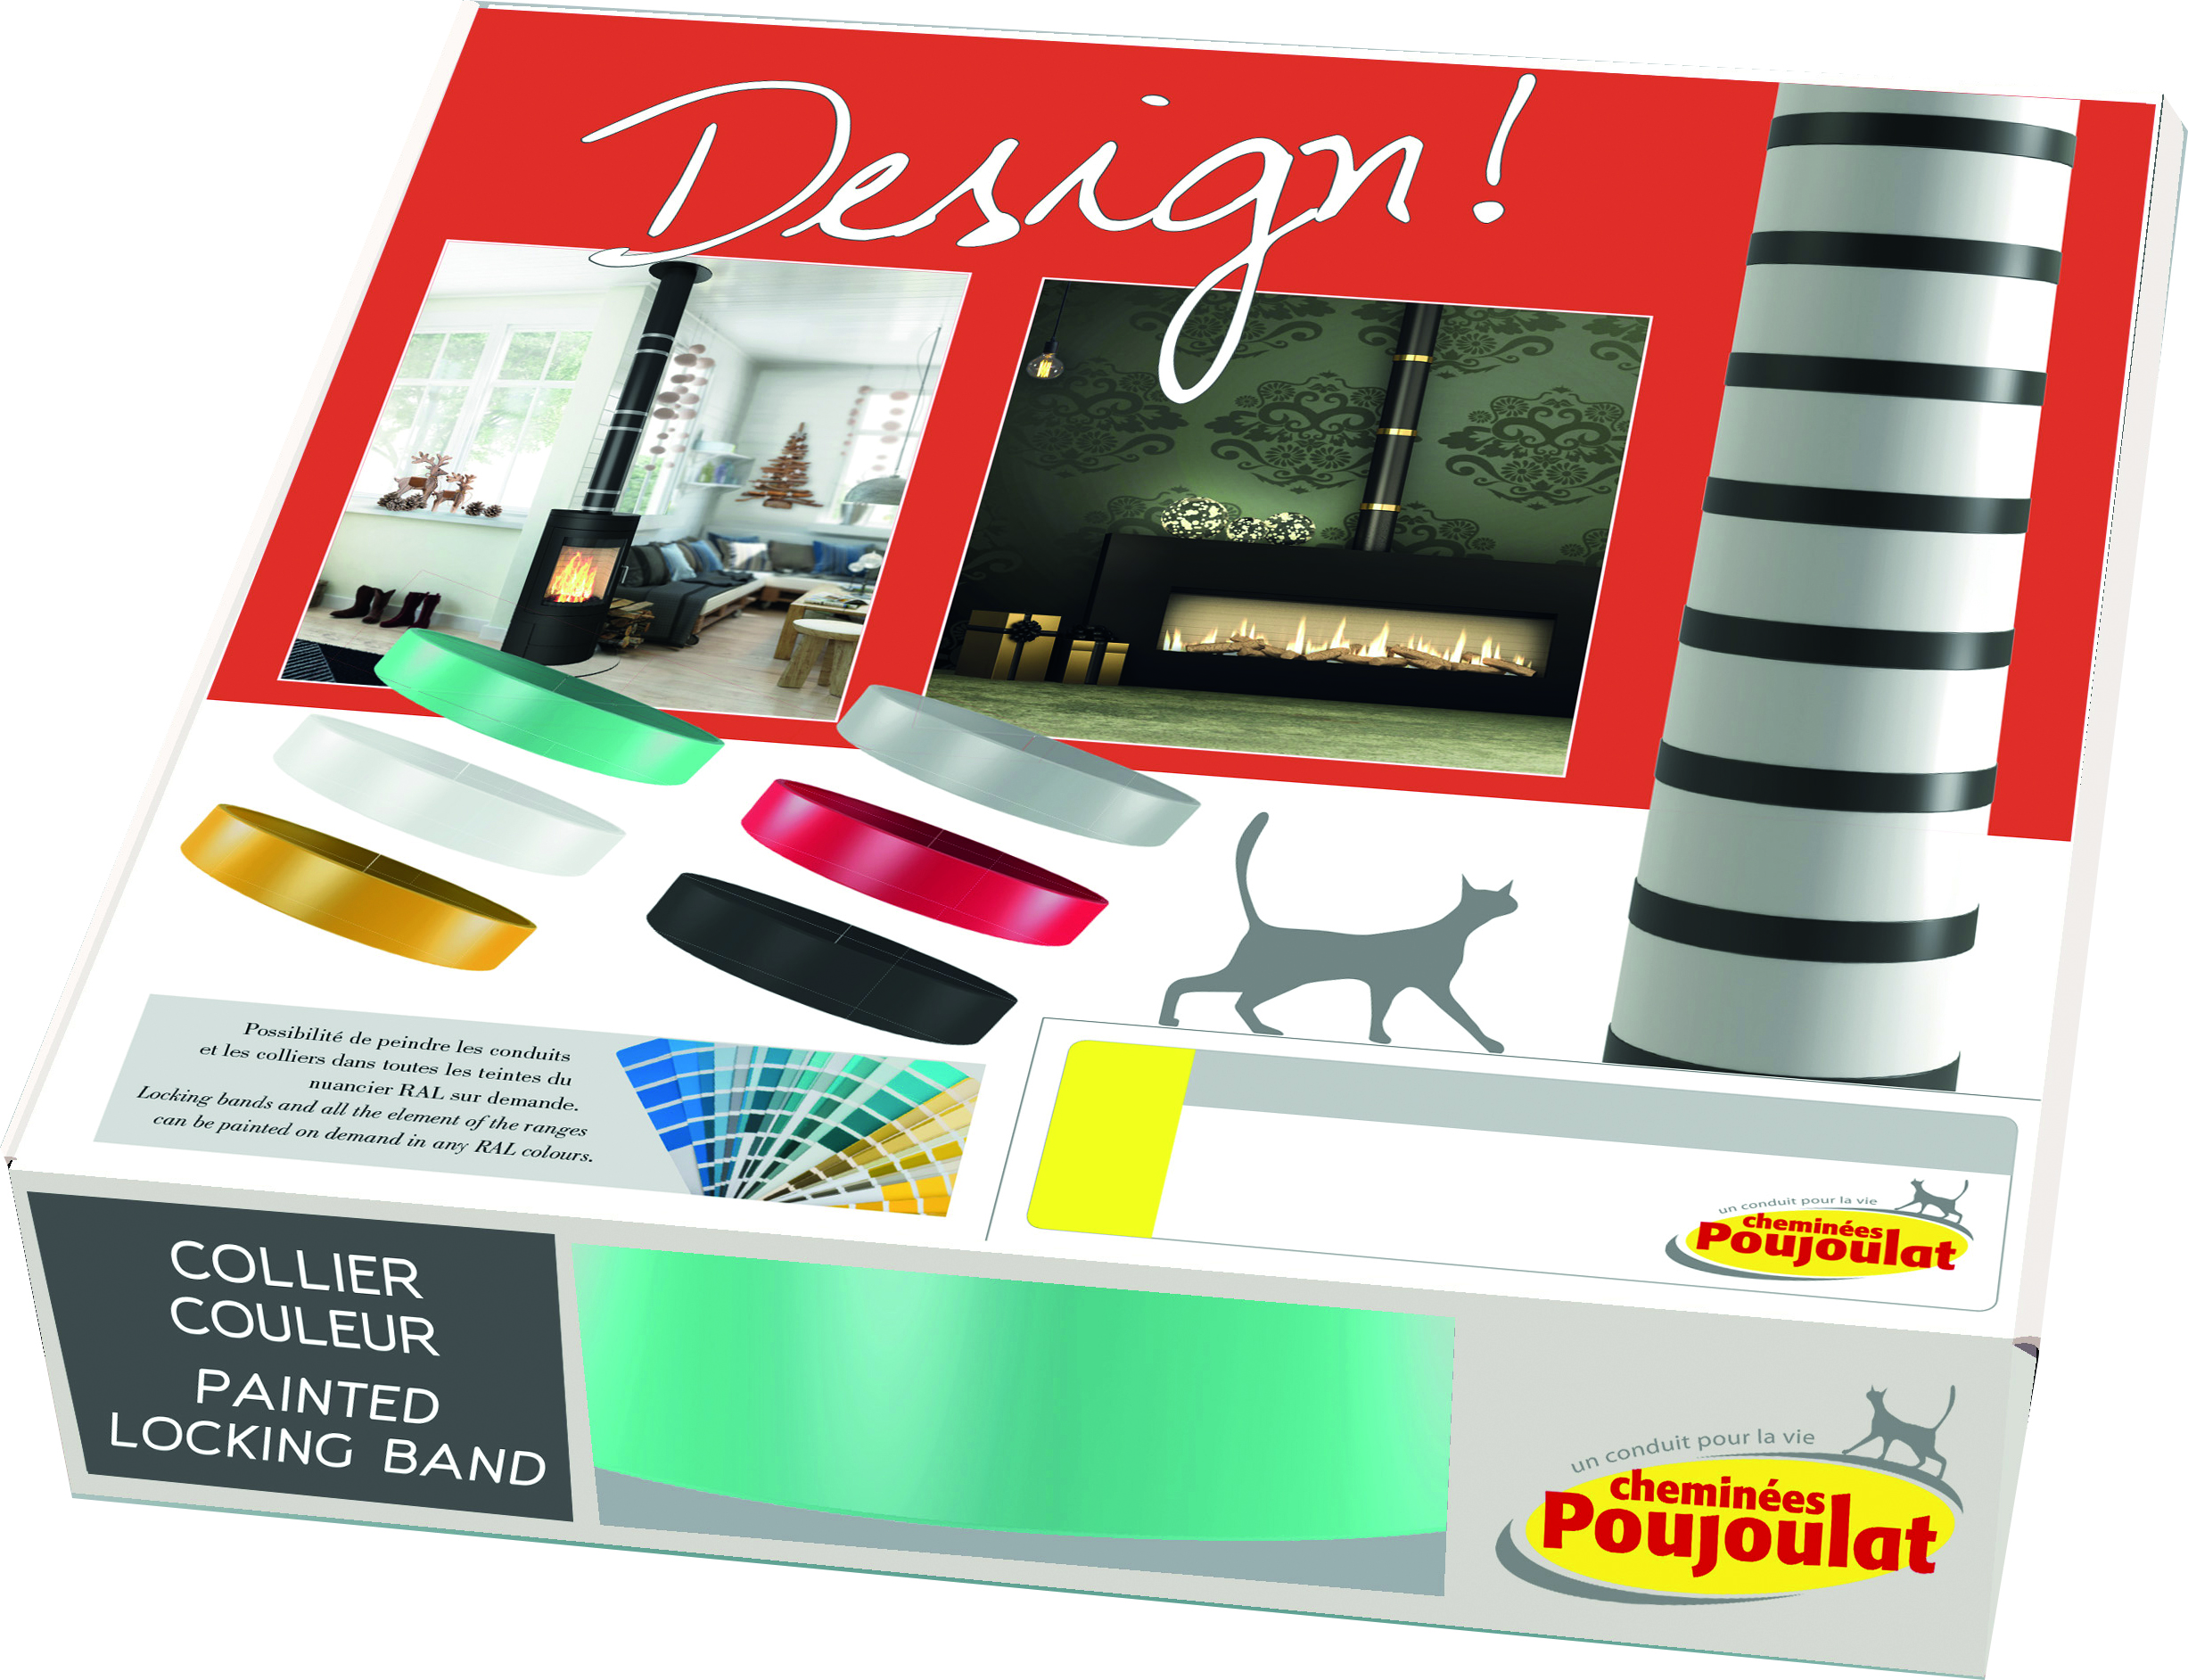 poujoulat catalogue perfect flue ce p multi external by. Black Bedroom Furniture Sets. Home Design Ideas